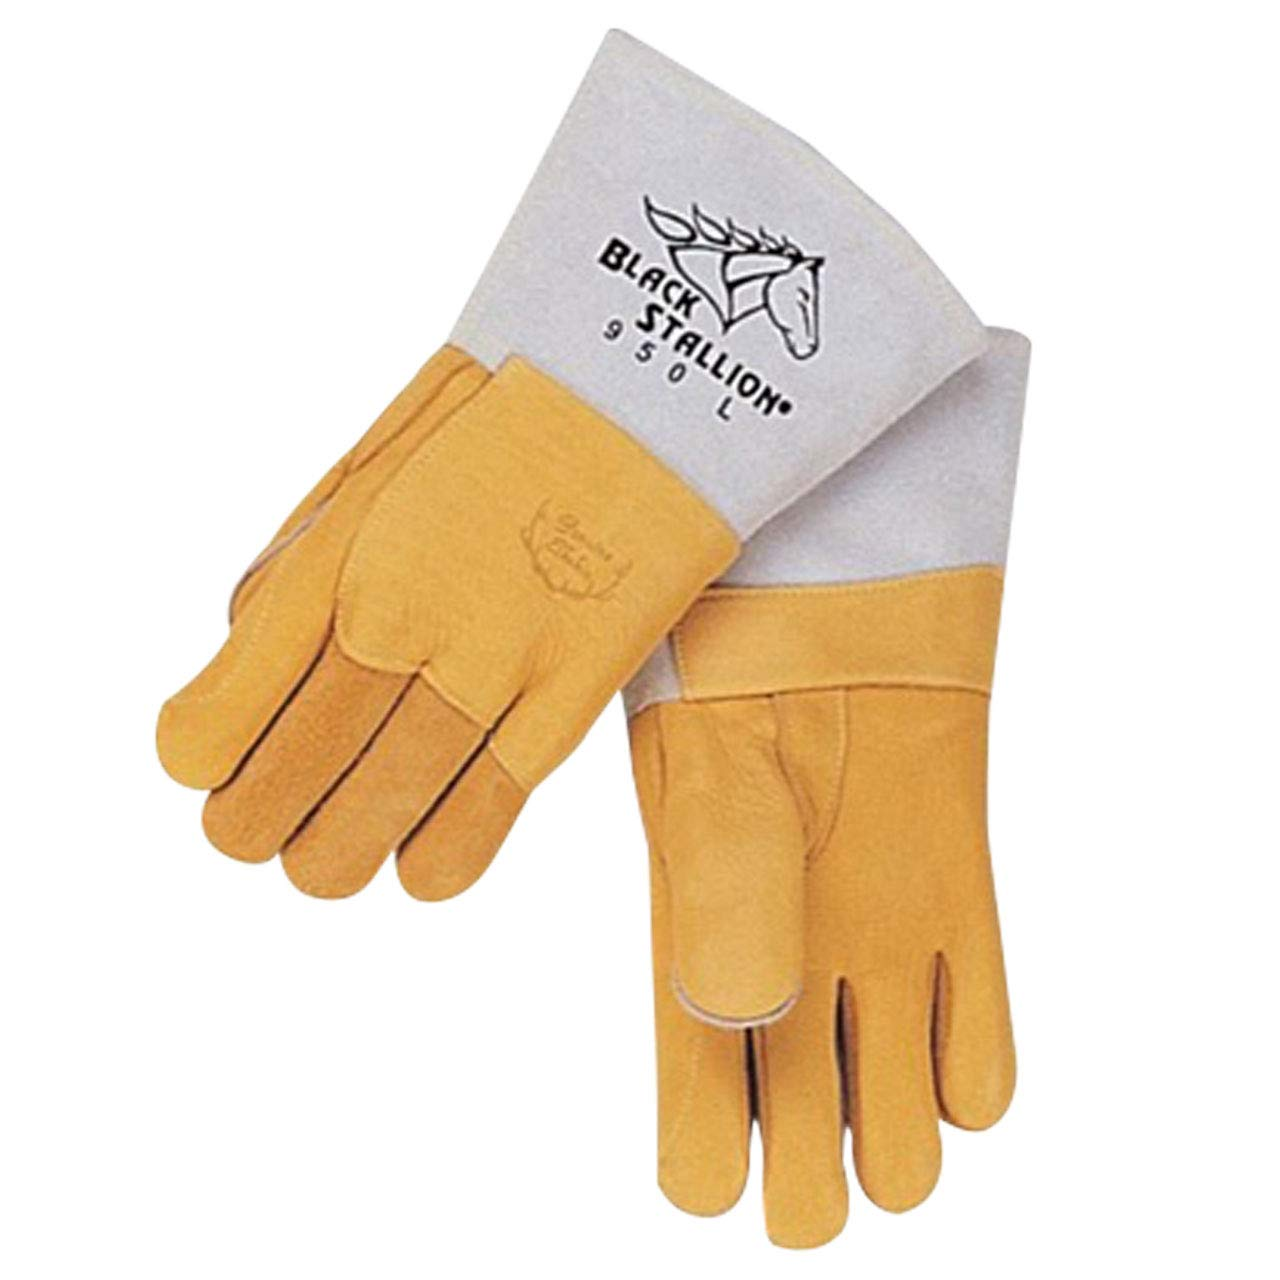 Black Stallion 950L Premium Lined Elkskin Stick Welding Gloves, Large by Black Stallion (Image #1)